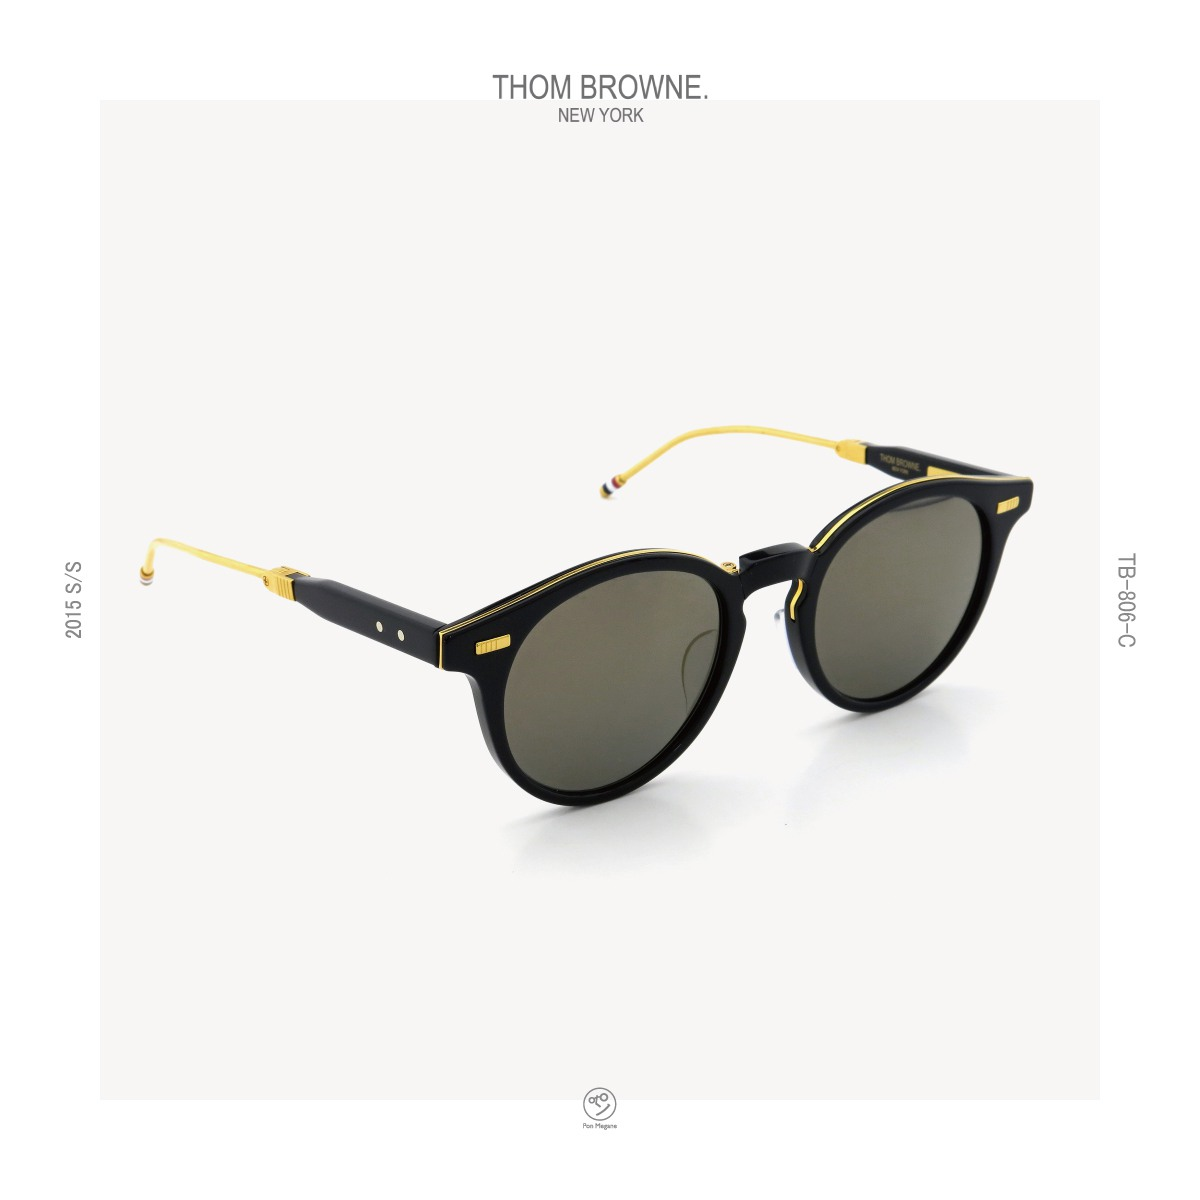 THOM-BROWNE 2015s/s TB-806-C NVY-18kGLD_52size post-ponmegane